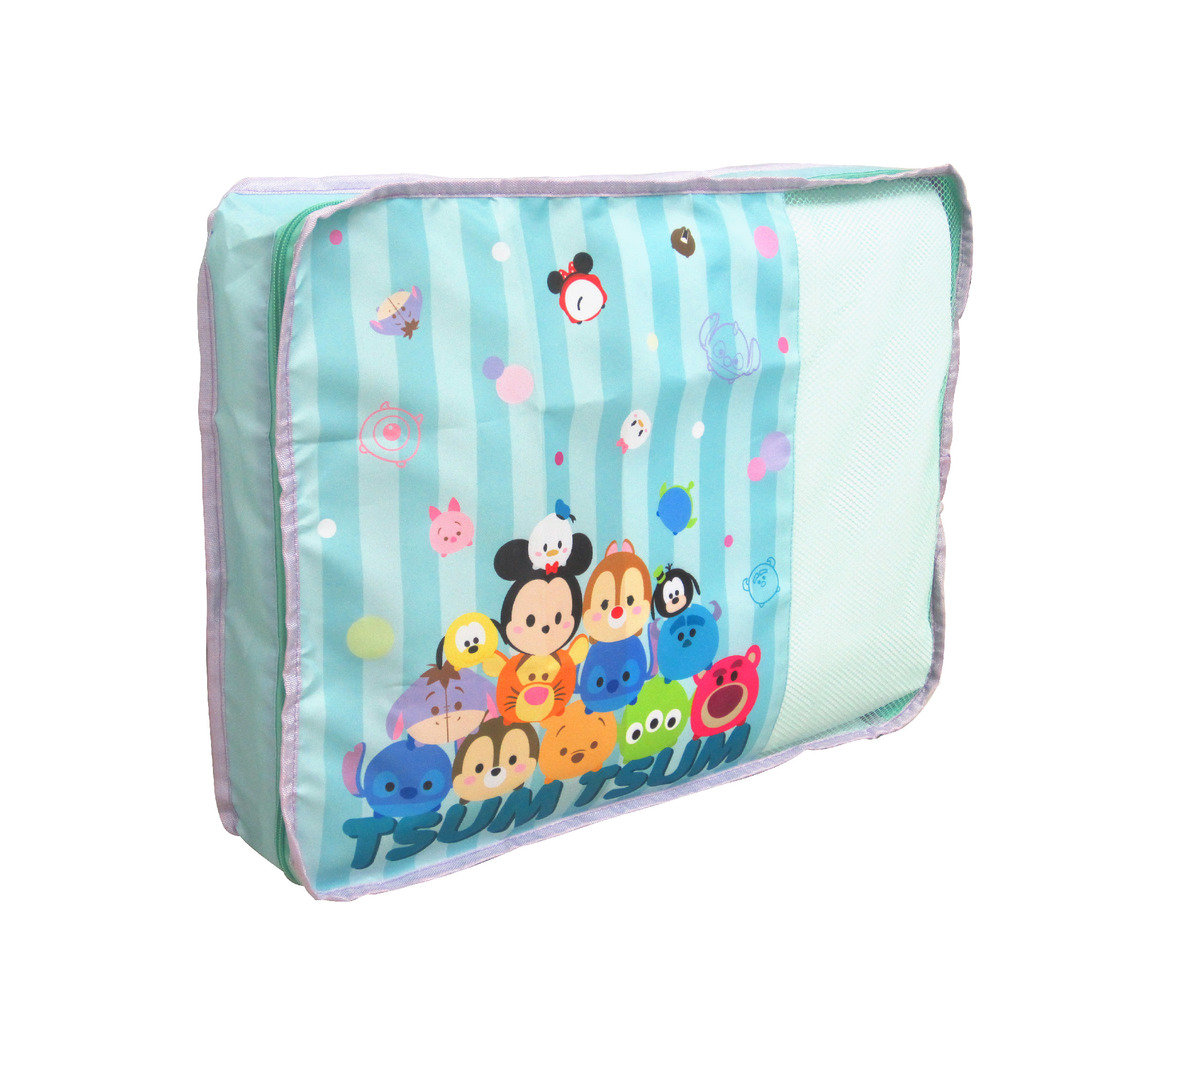 迪士尼DisneyStorage Bag (L)--Green